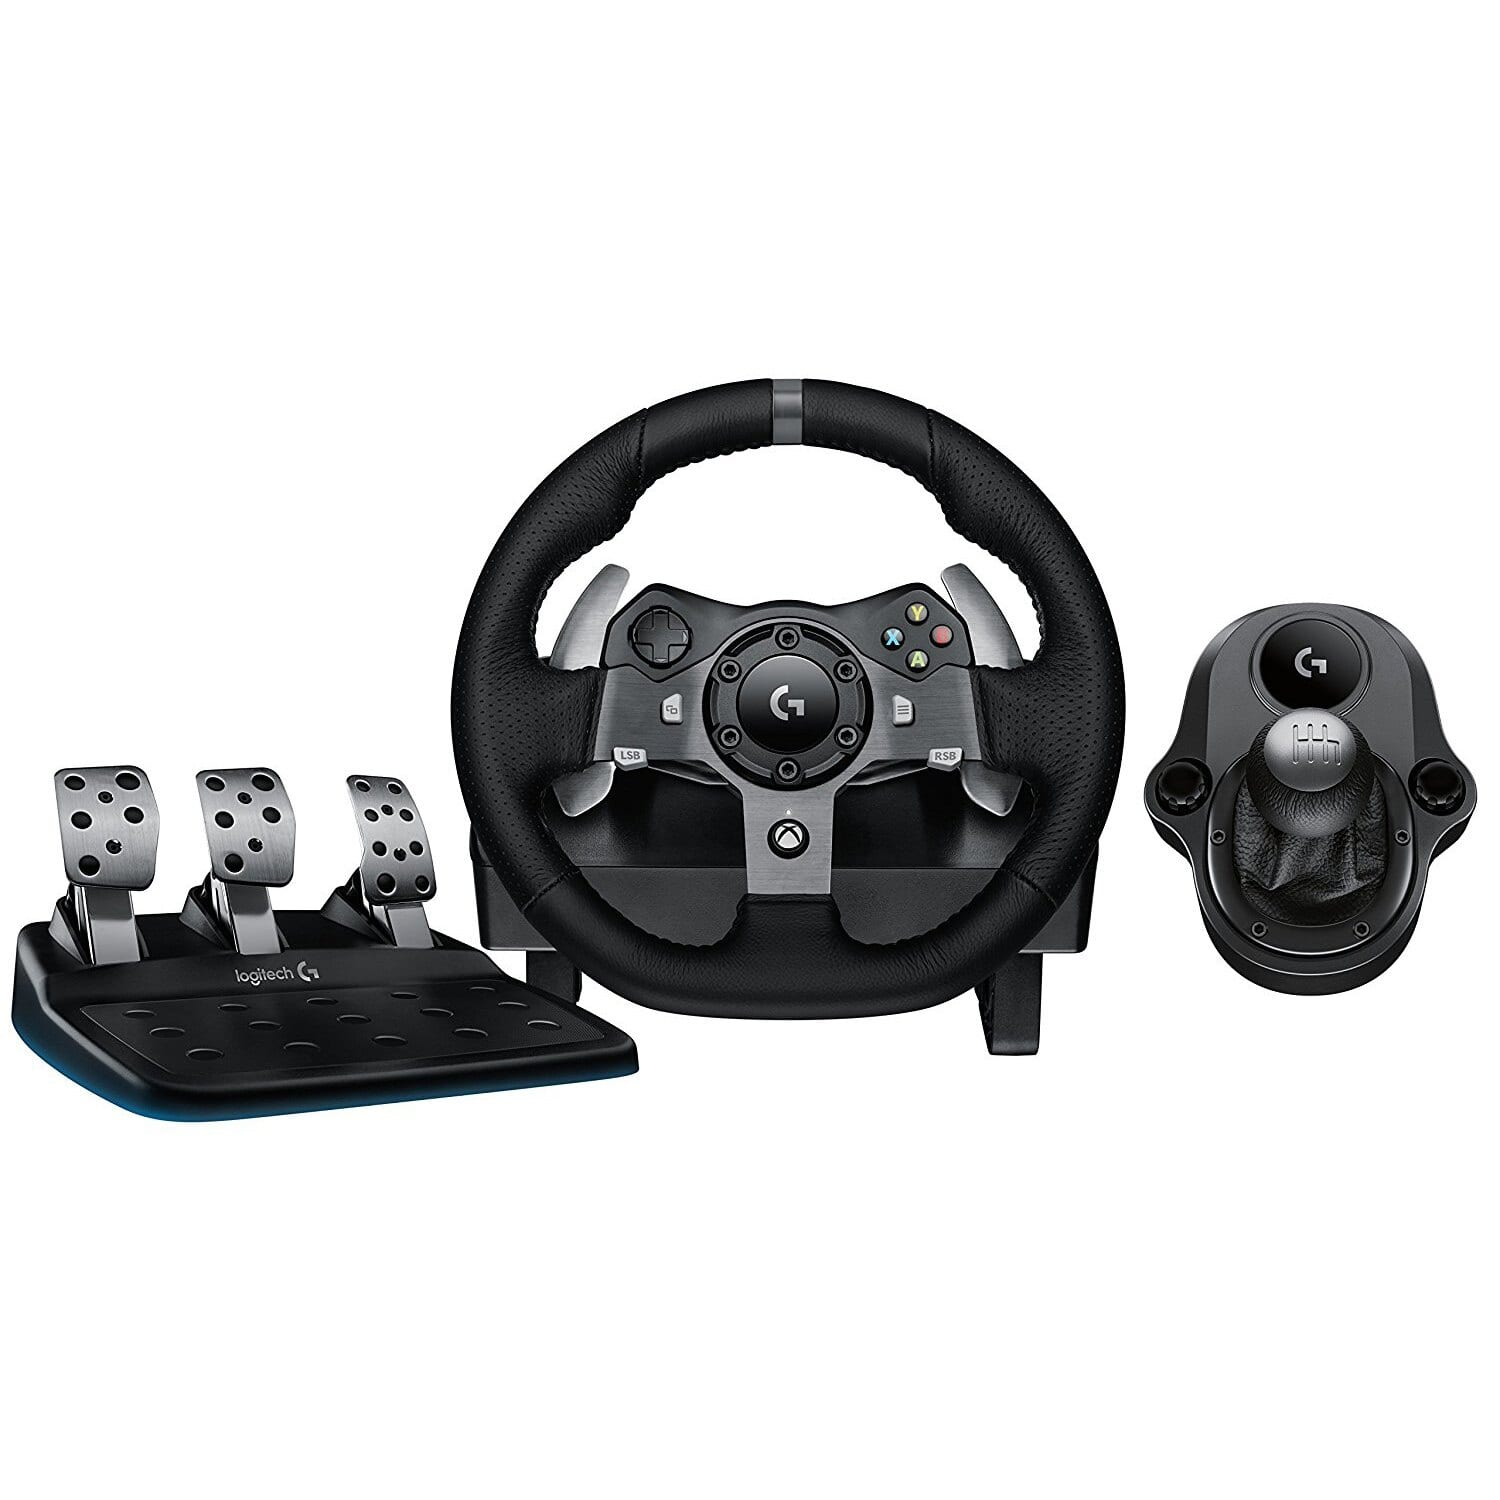 Logitech G29 [PS4/PC] Driving Force Racing Wheel + Pedals + G-Force Shifter Bundle - $219.99 + Free Shipping